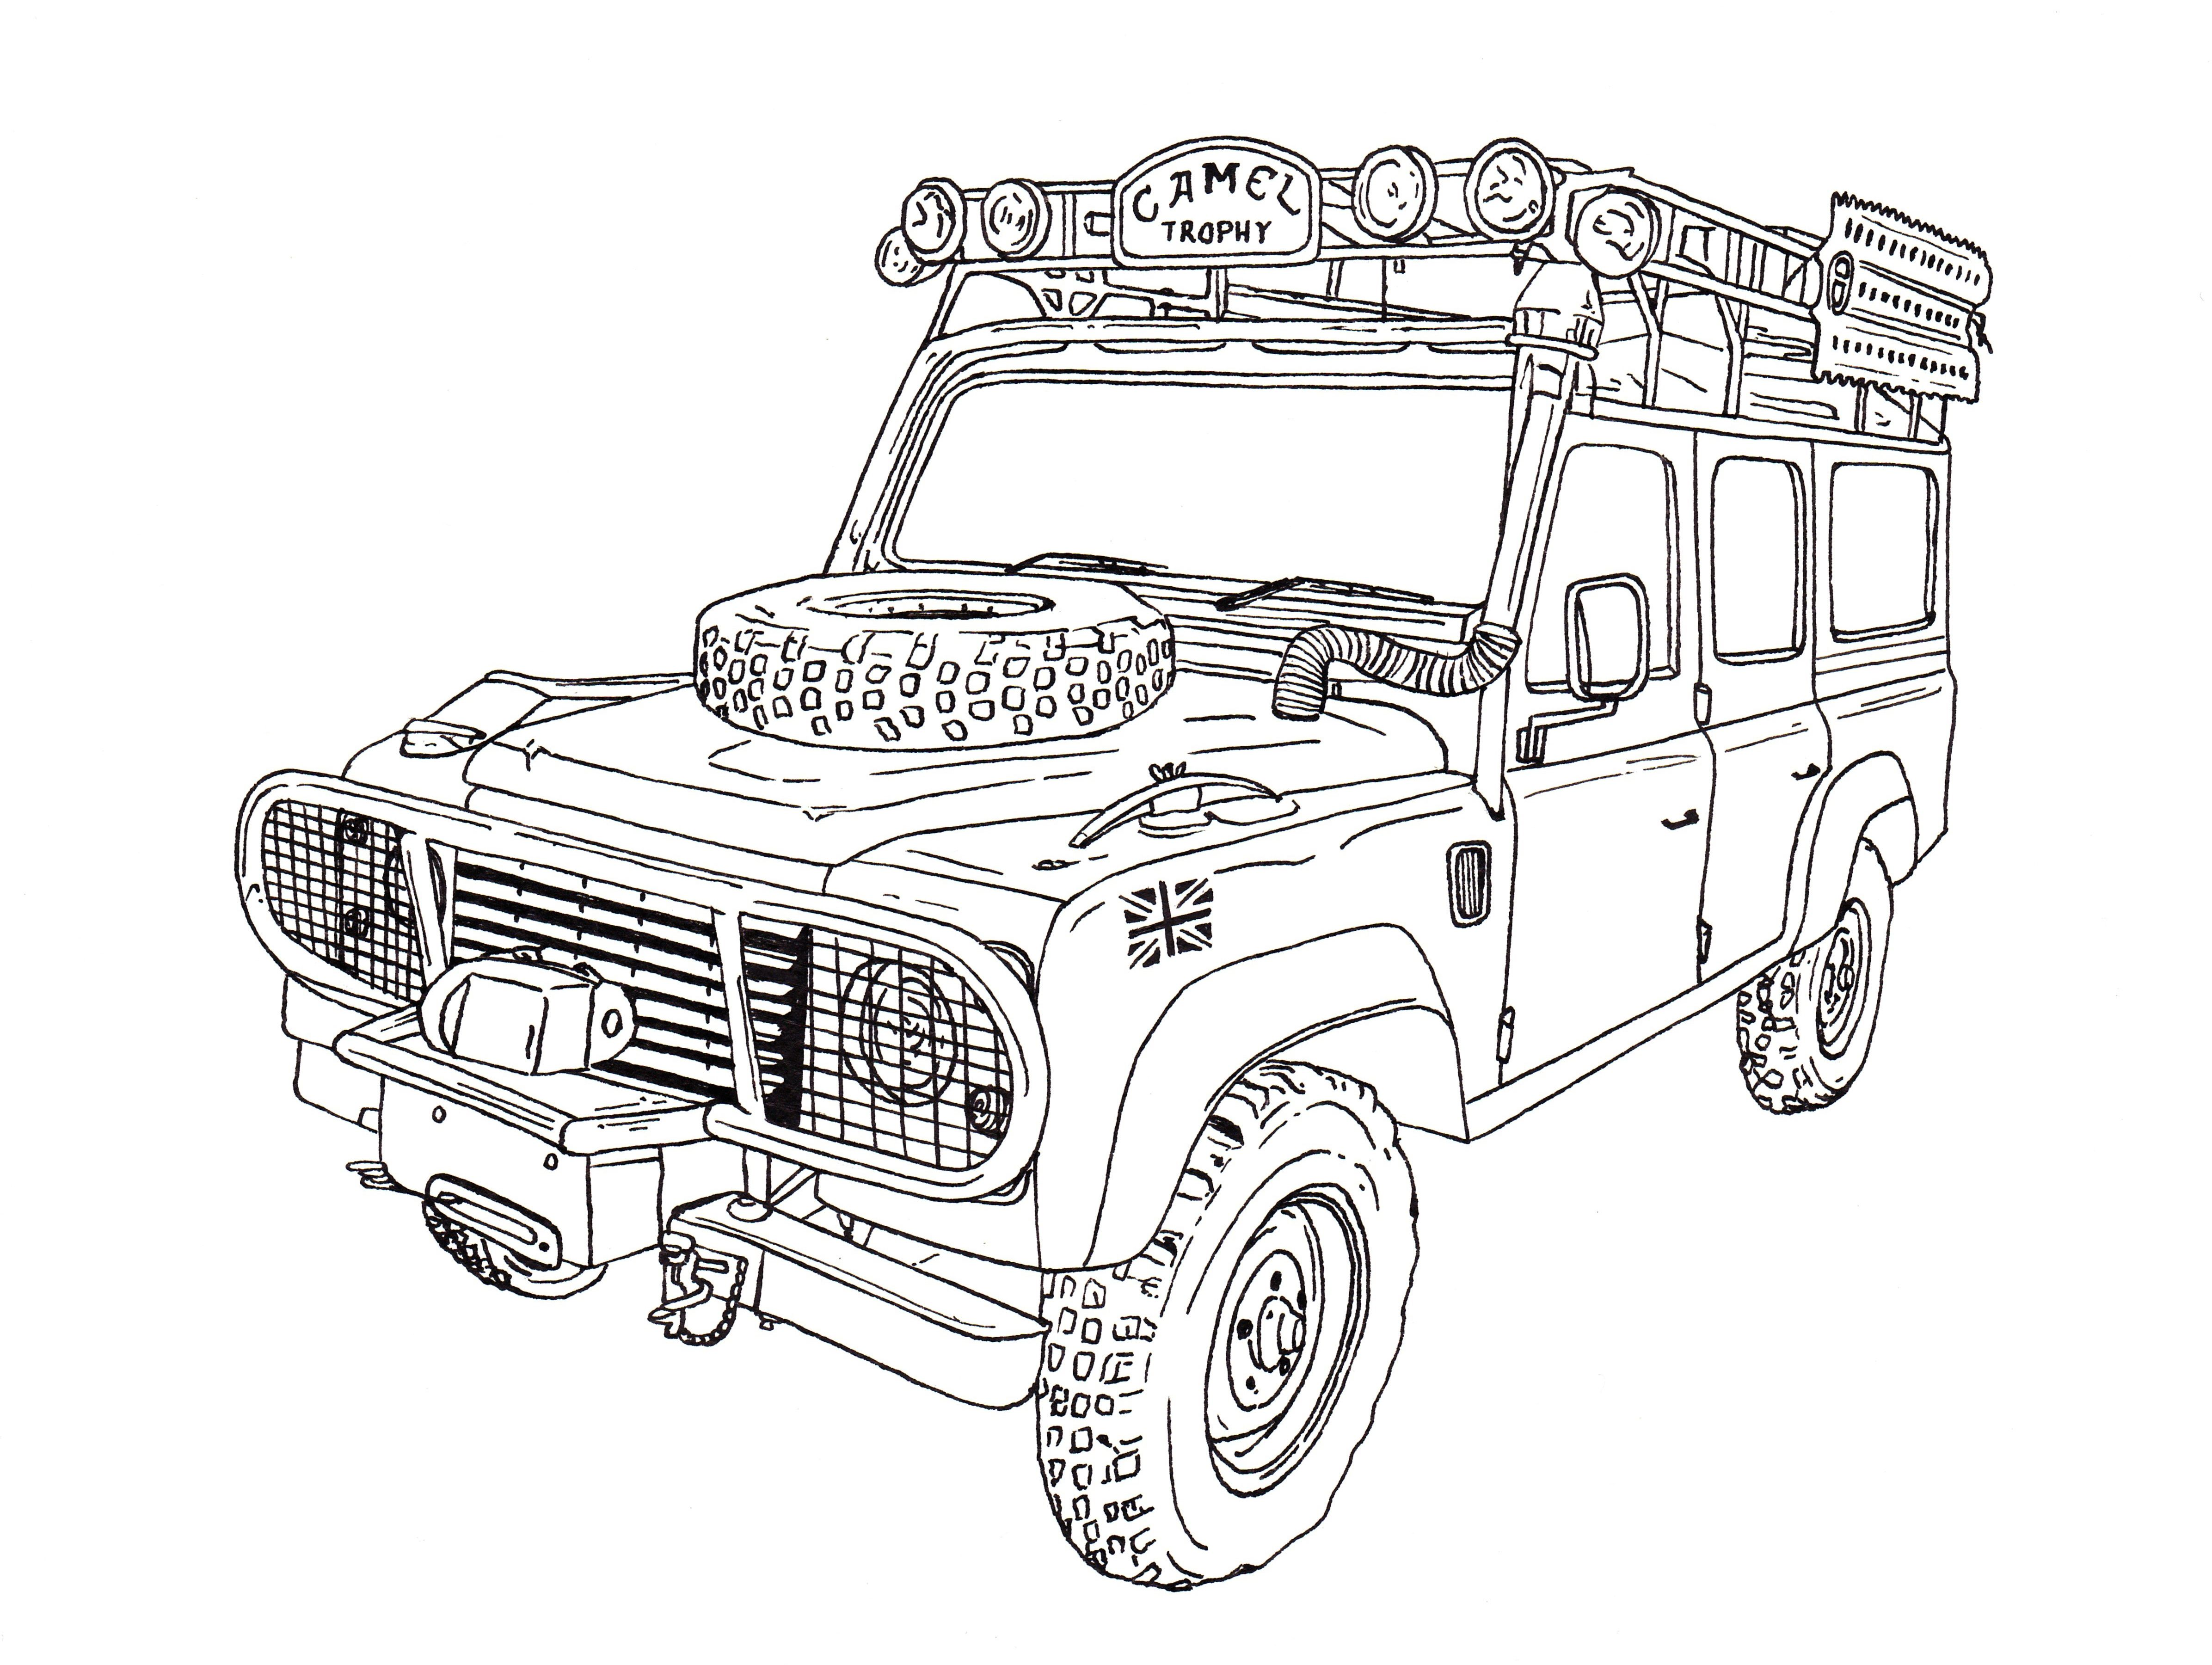 Camel Trophy Land Rover Defender 110 Ink Drawing